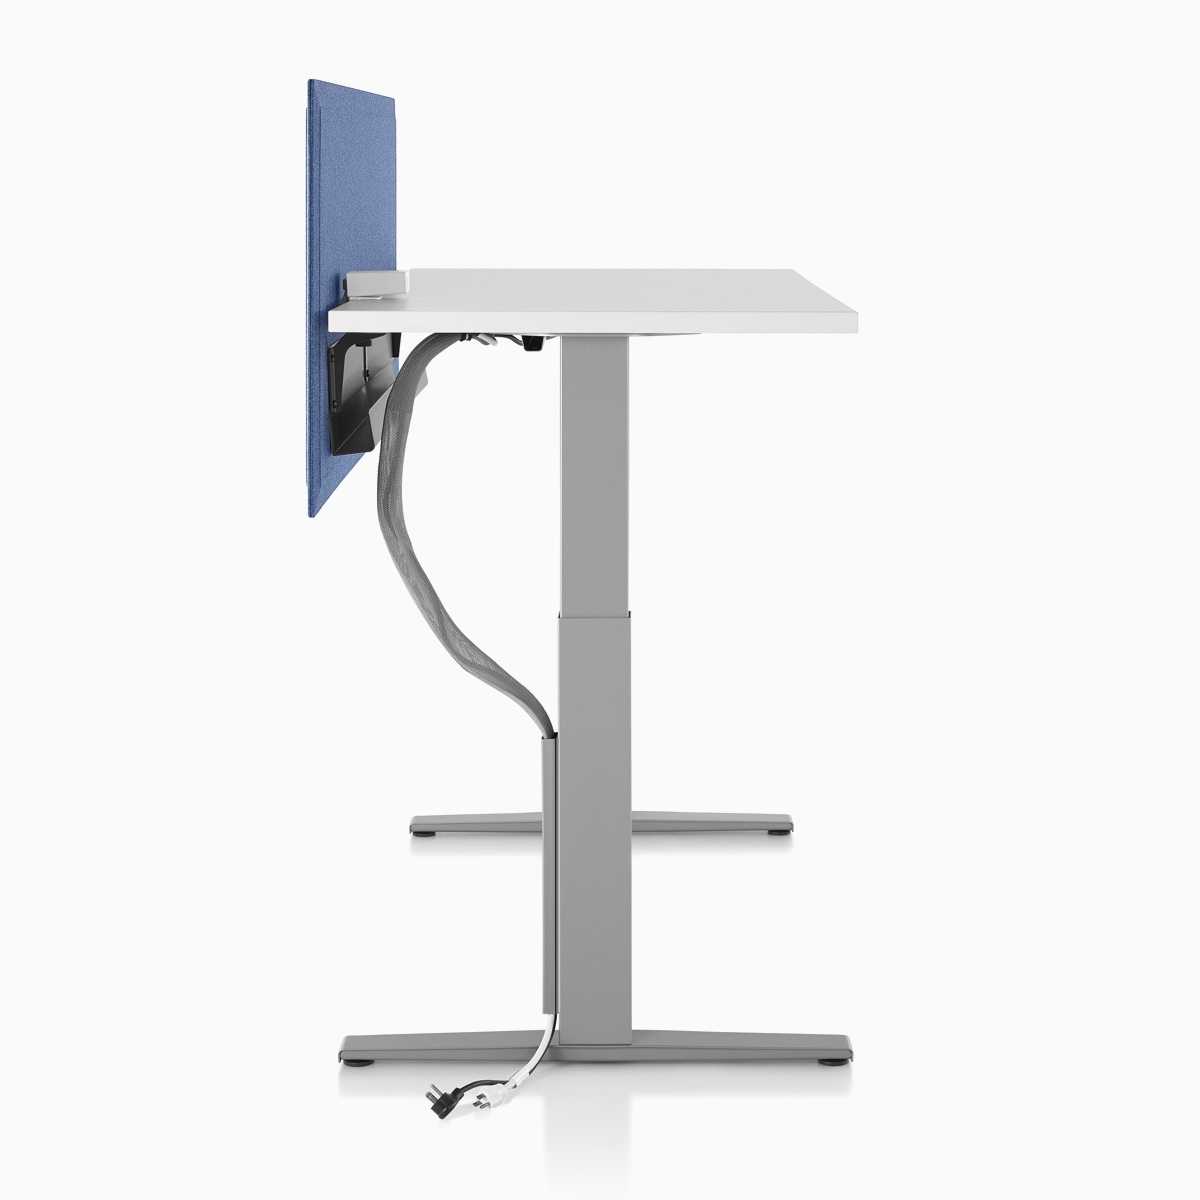 Side profile of Motia Sit-to-Stand Table with a cable management tray attached to the privacy screen and a cable manager attached along the base.